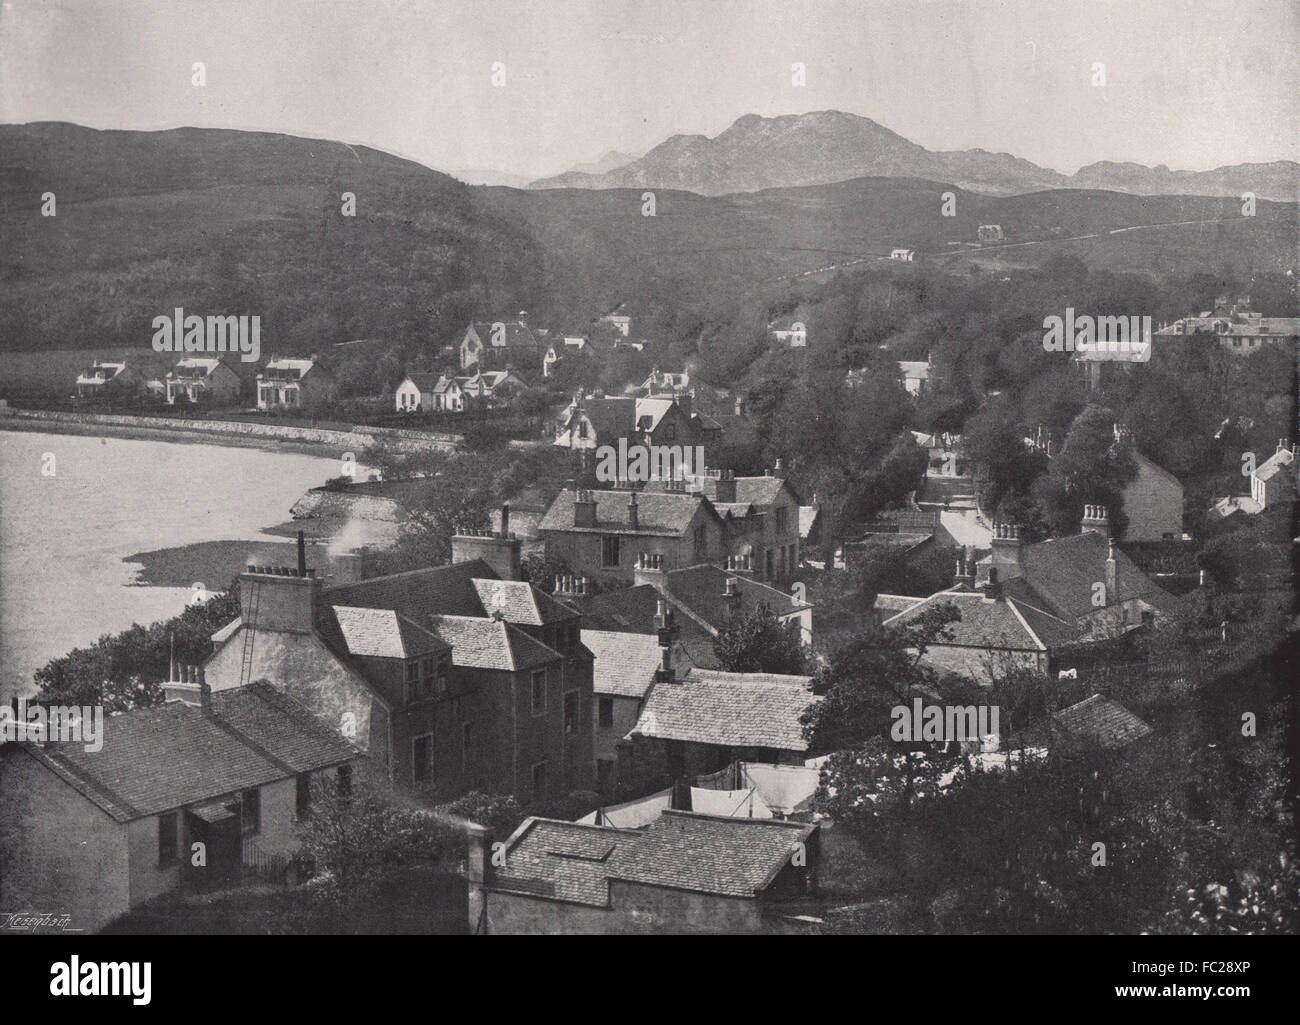 GARELOCH-HEAD. From the hills. Scotland, antique print 1895 - Stock Image